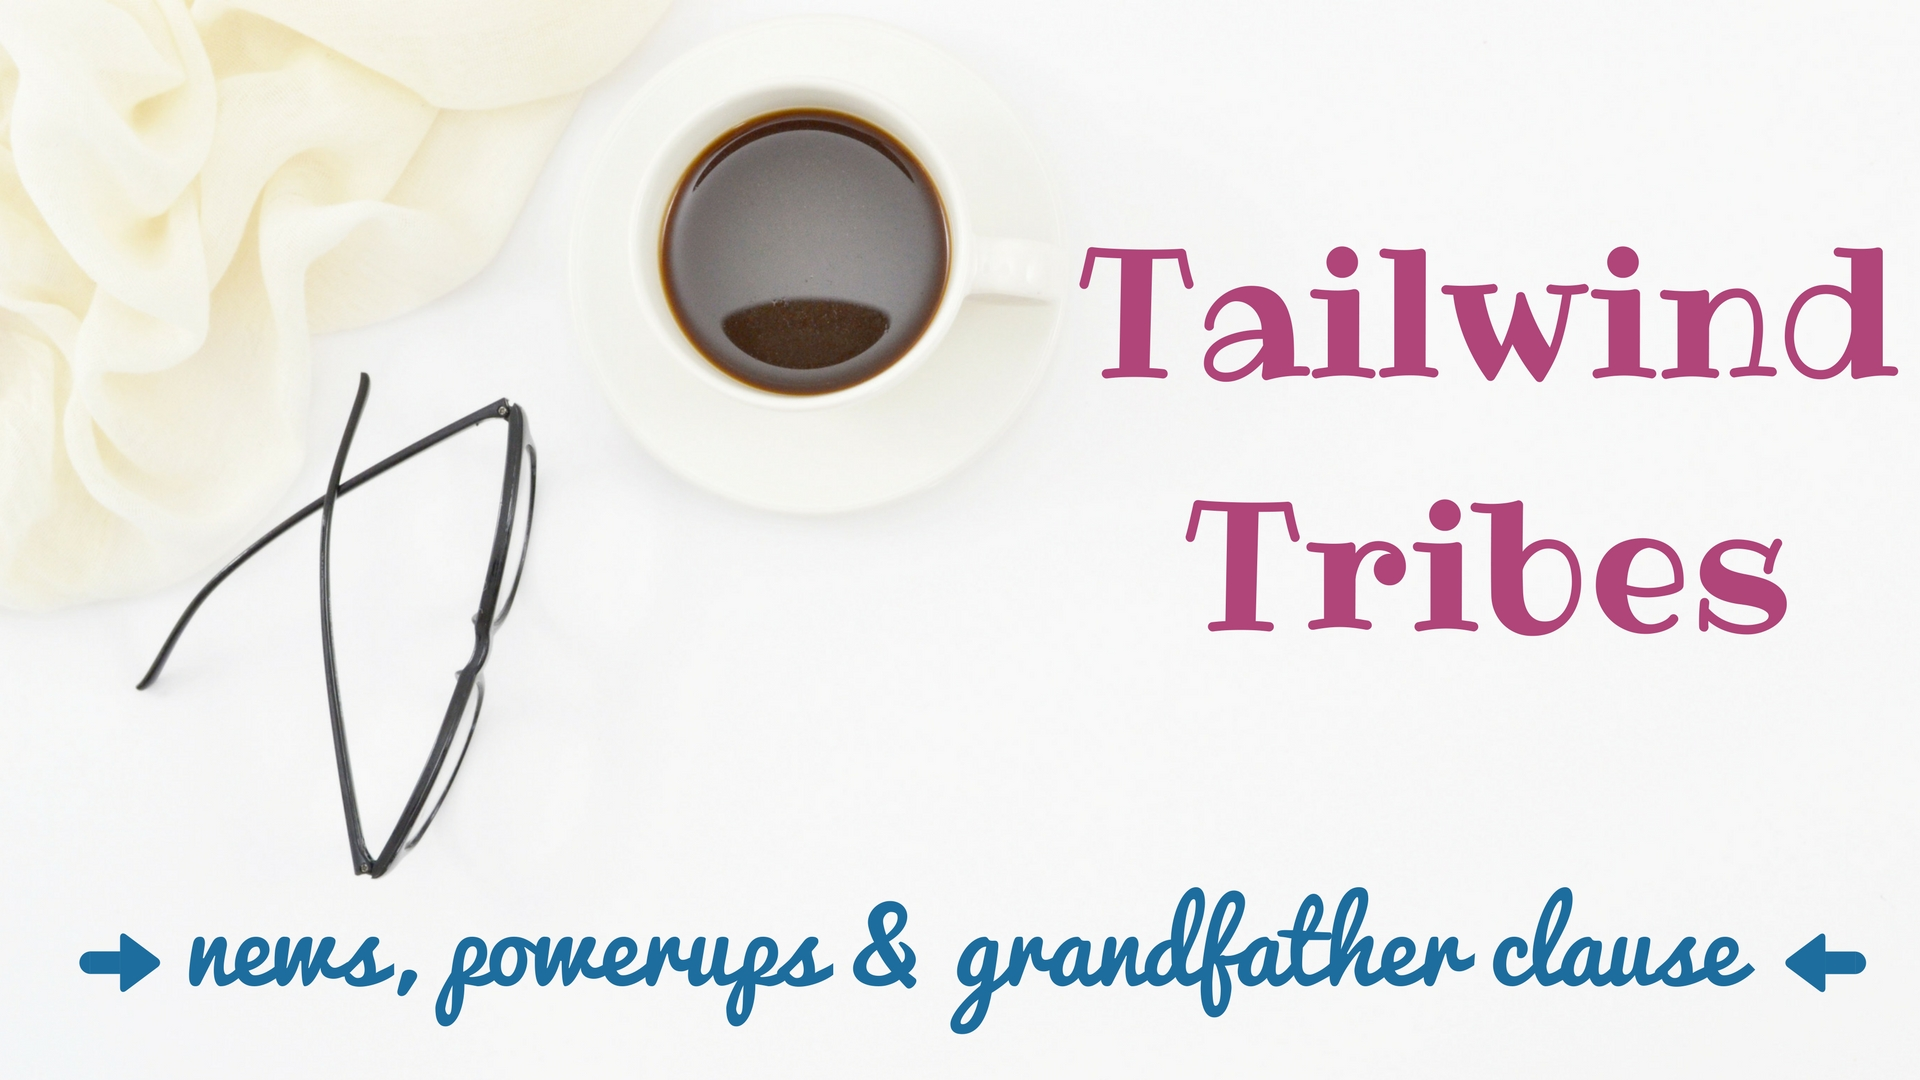 Tailwind Tribes PowerUps and grandfather clause